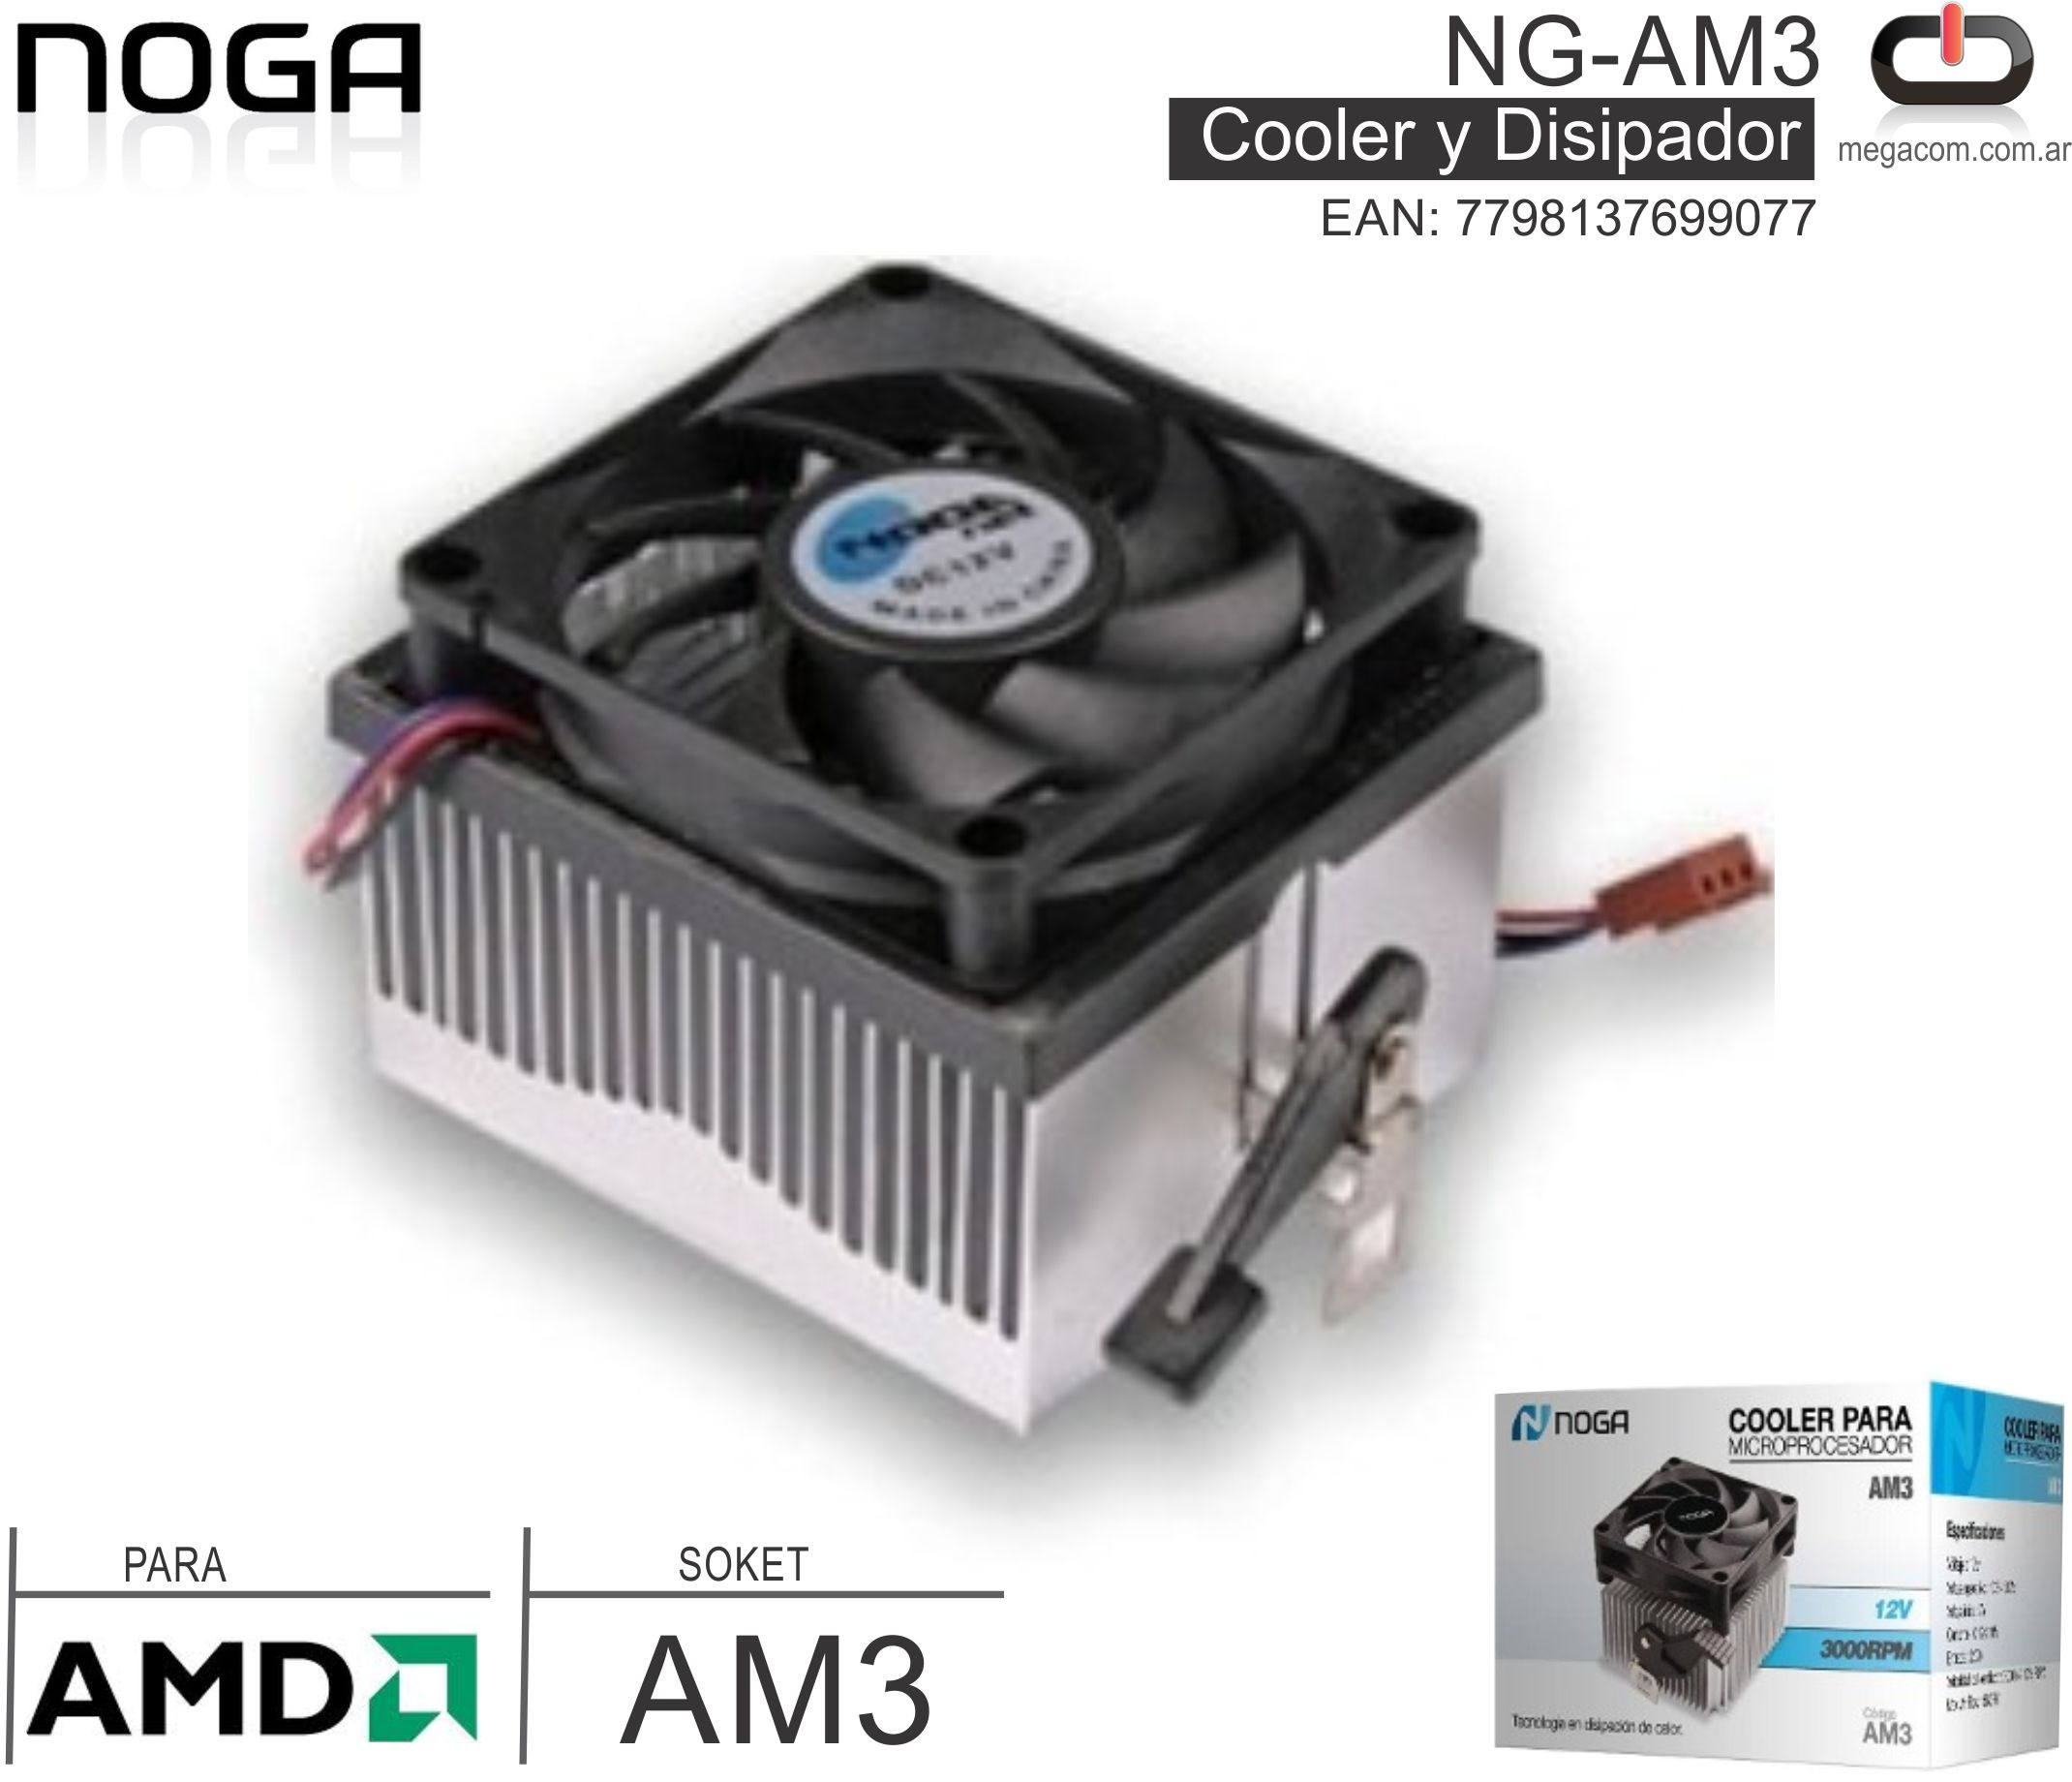 COOLER NOGA NG-AMCOOLER NOGA NG-AM33 (AMD) SOK AM3